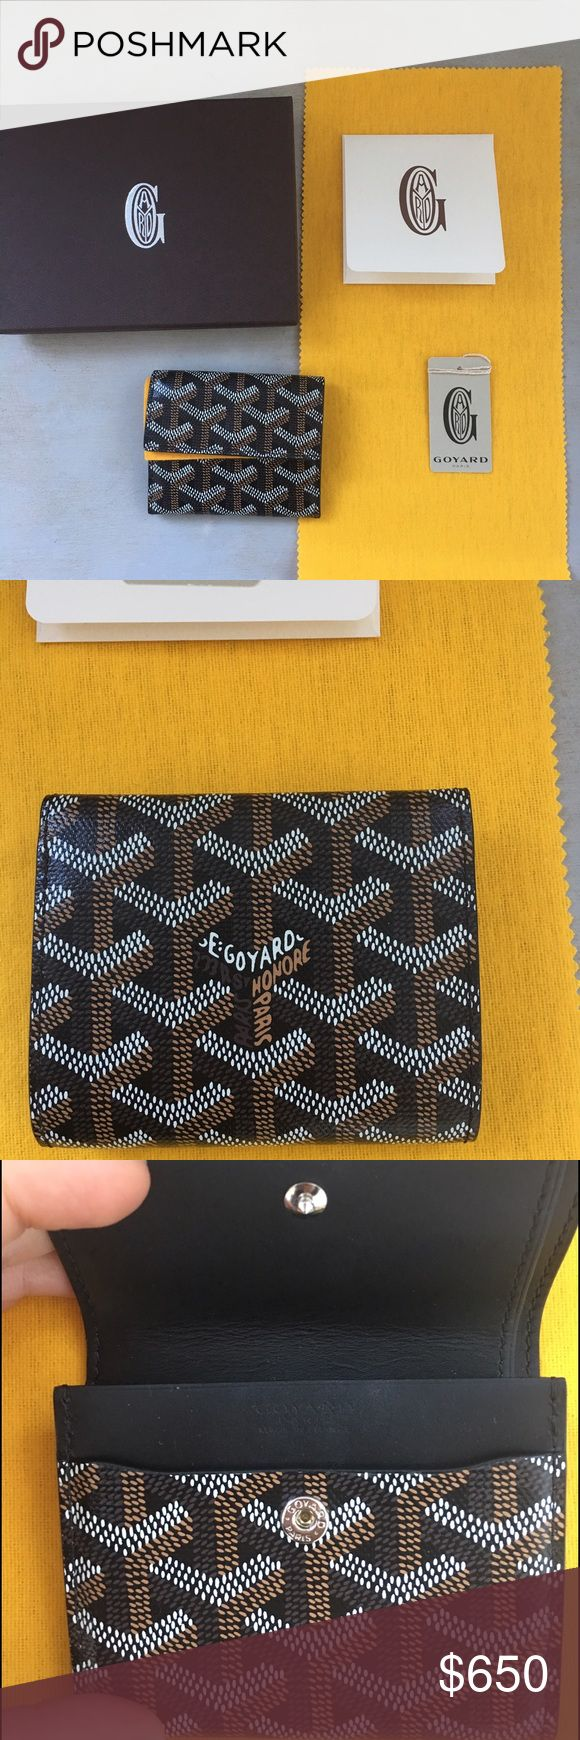 Goyard coin wallet purse Goyard small coin wallet. In original goyard black print with bright yellow accent. Snap button closure pocket - good for coins and a few cards. Additional side pocket - good for folded bills or receipts. Mint condition. Comes with box, felt protection fabric square and original Goyard tags. Goyard Bags Wallets